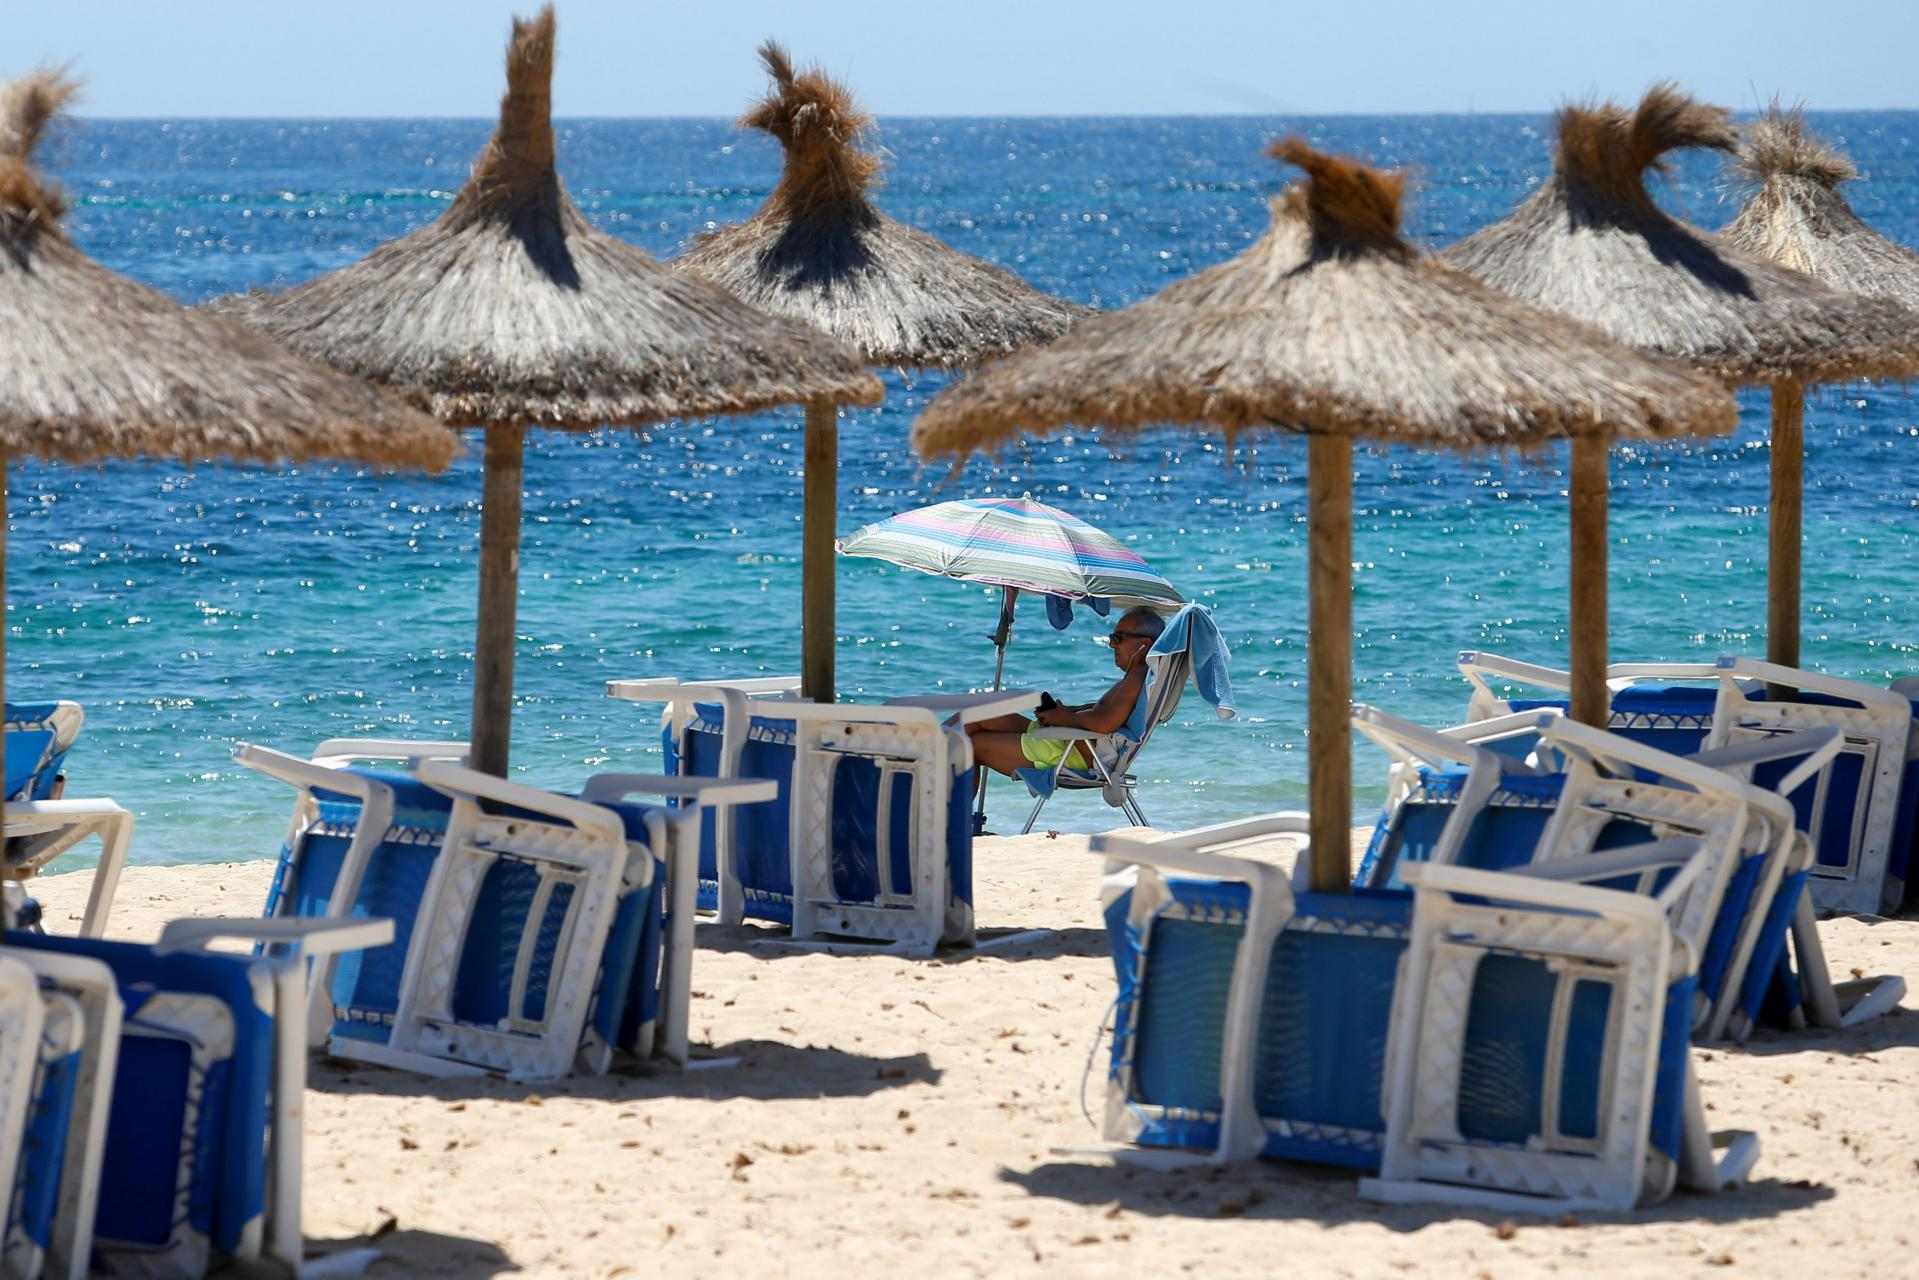 British government ease travel restrictions to Palma de Mallorca